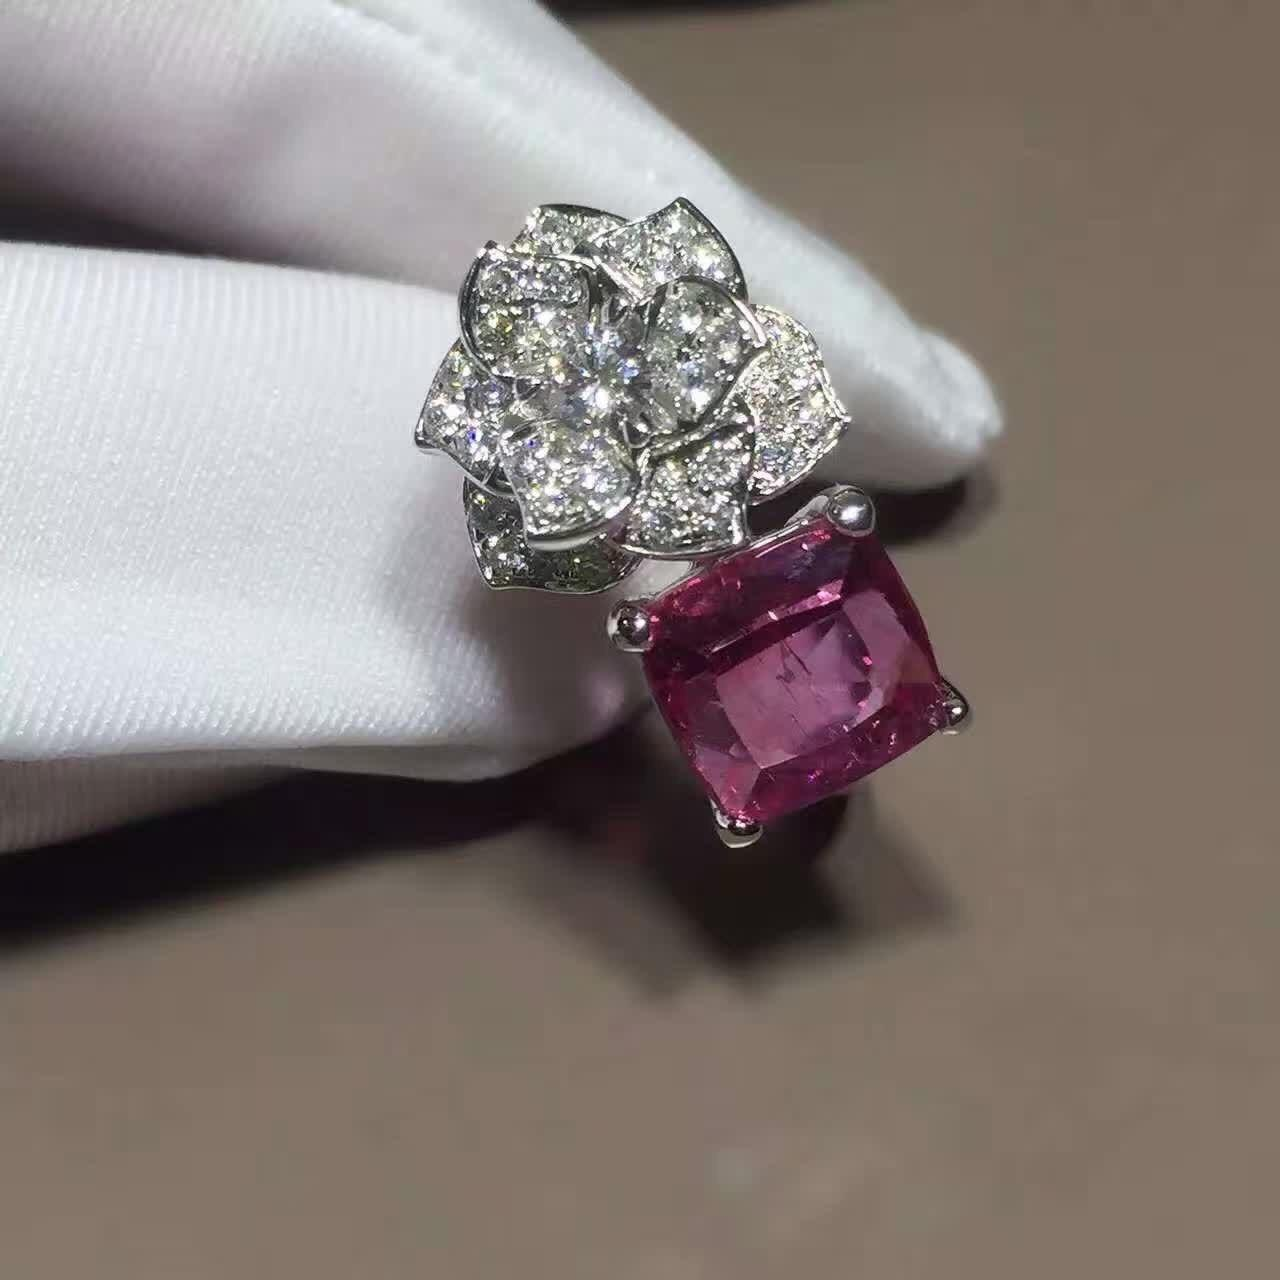 Buy cheap 18K White Gold Piaget Rose Flower Ring G34UU600 With Cushion - Cut Pink Tourmaline from wholesalers